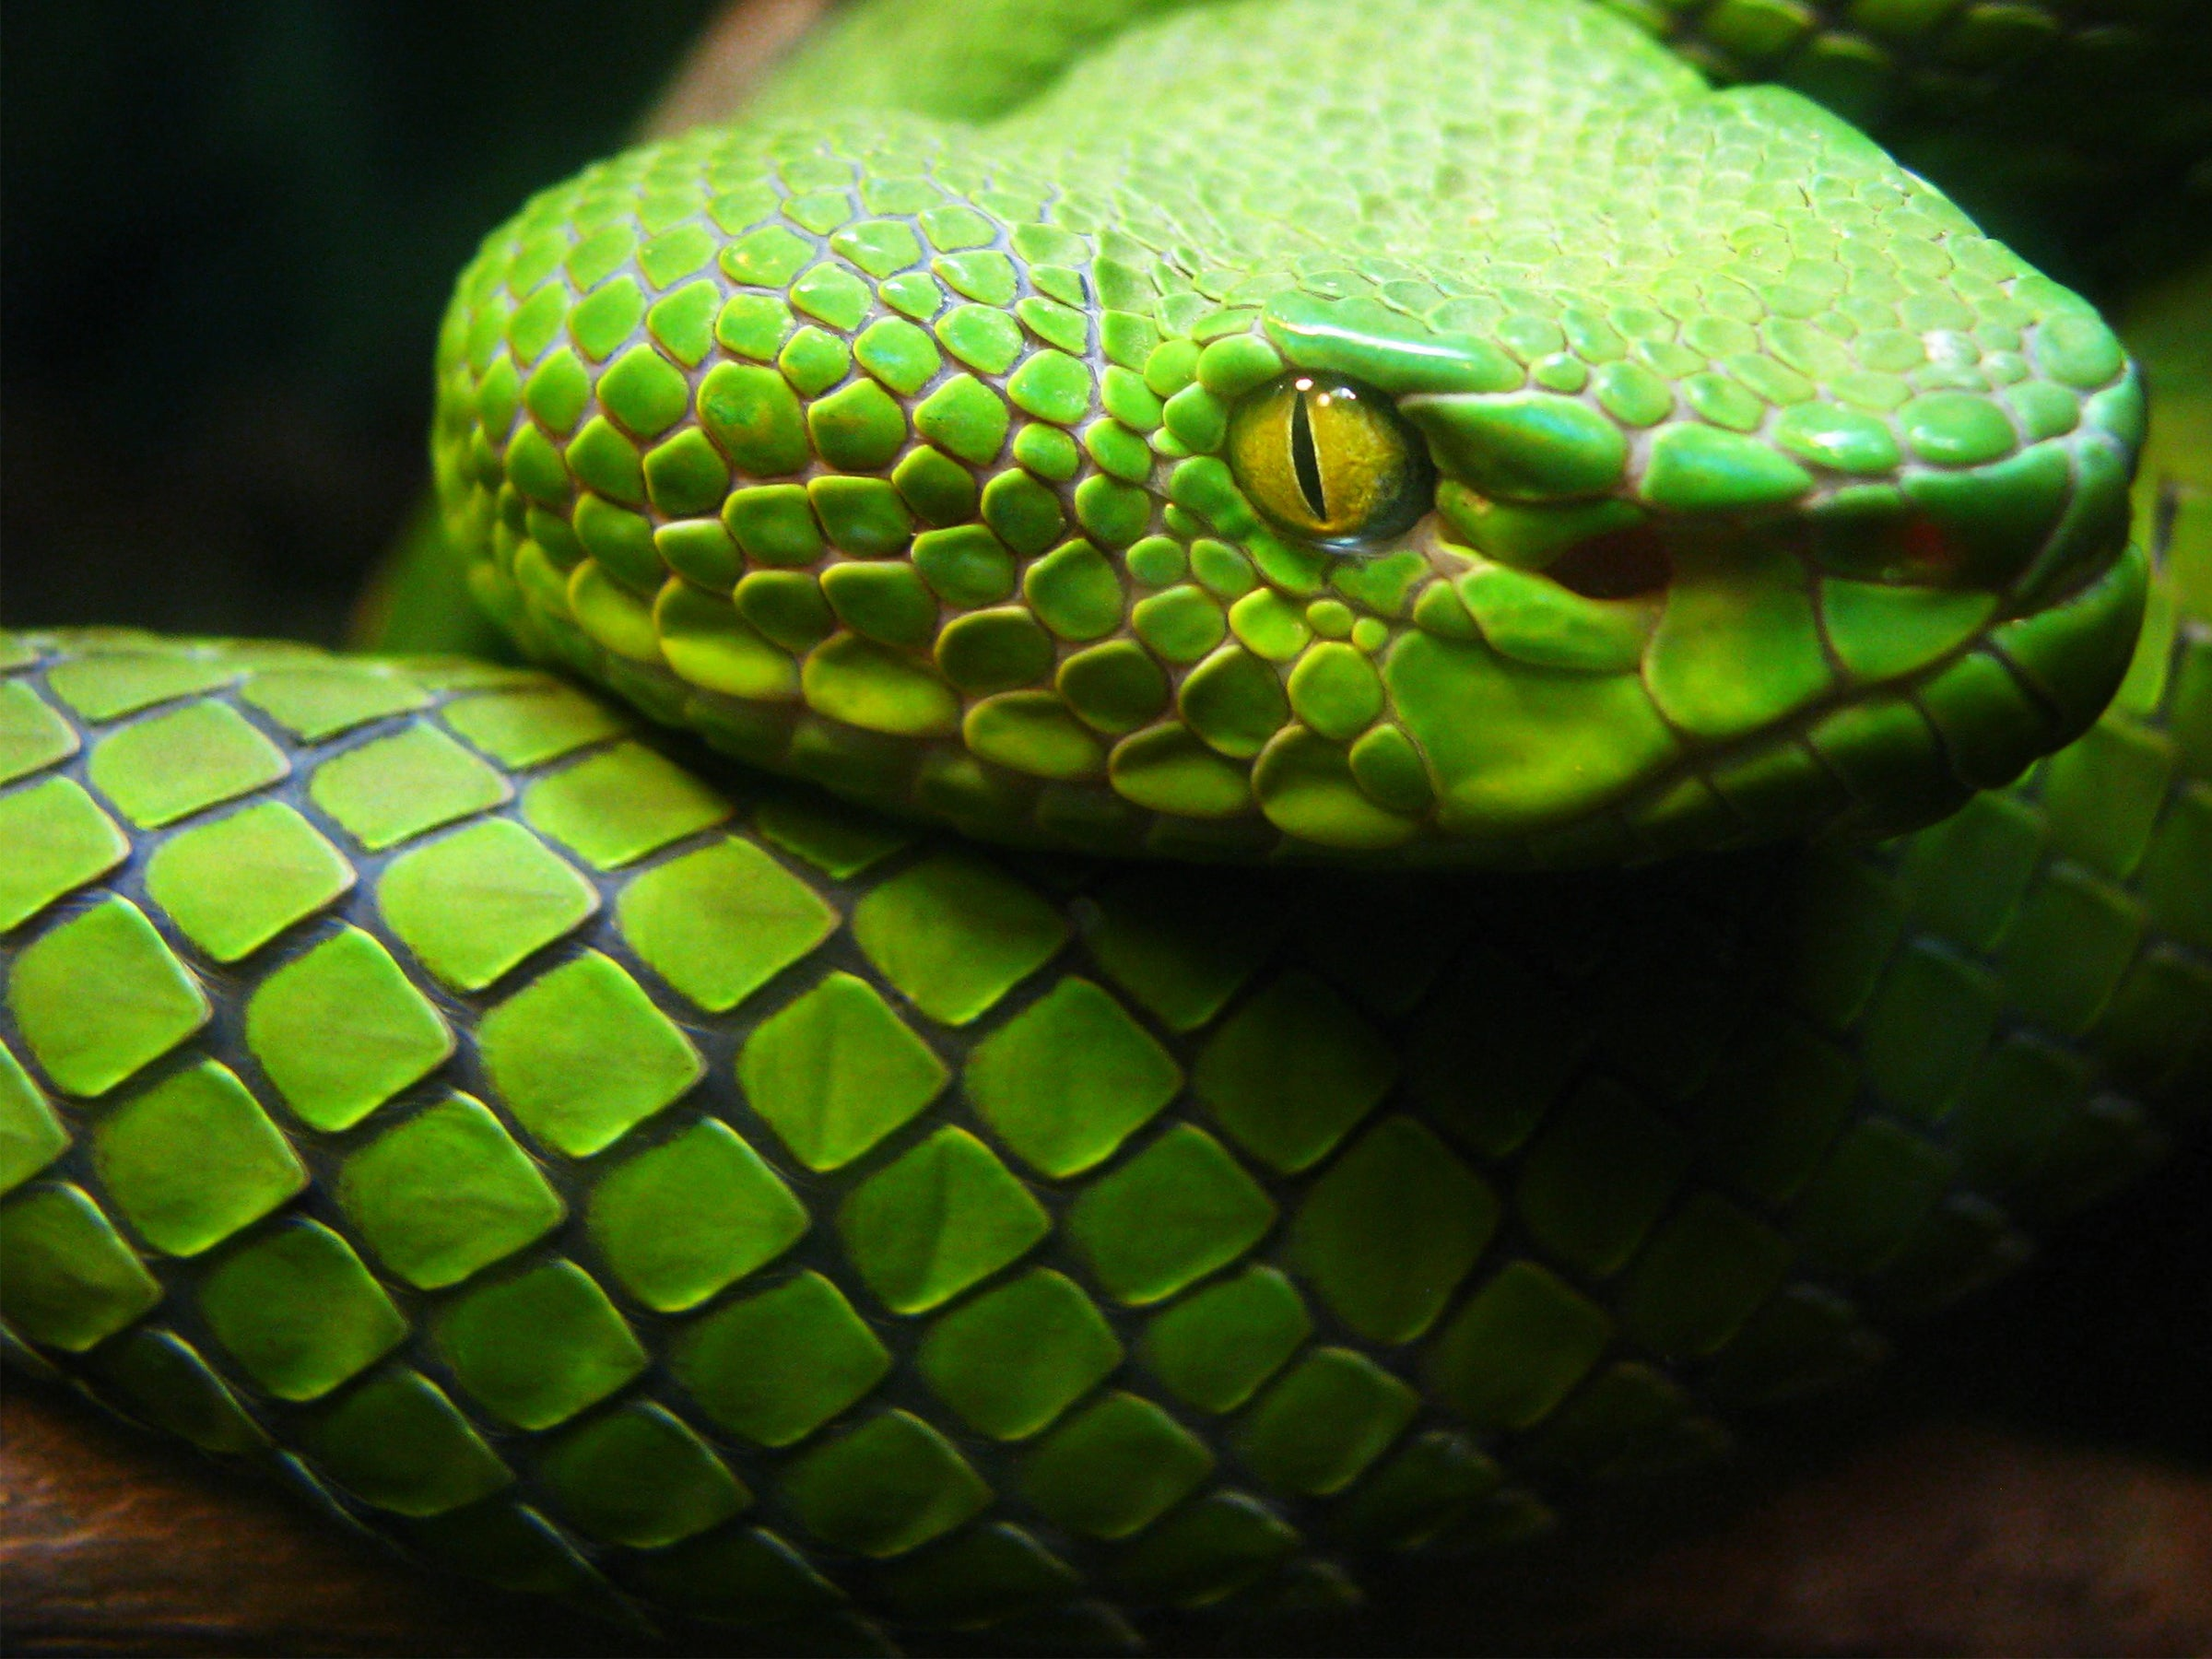 green snake with yellow eyes